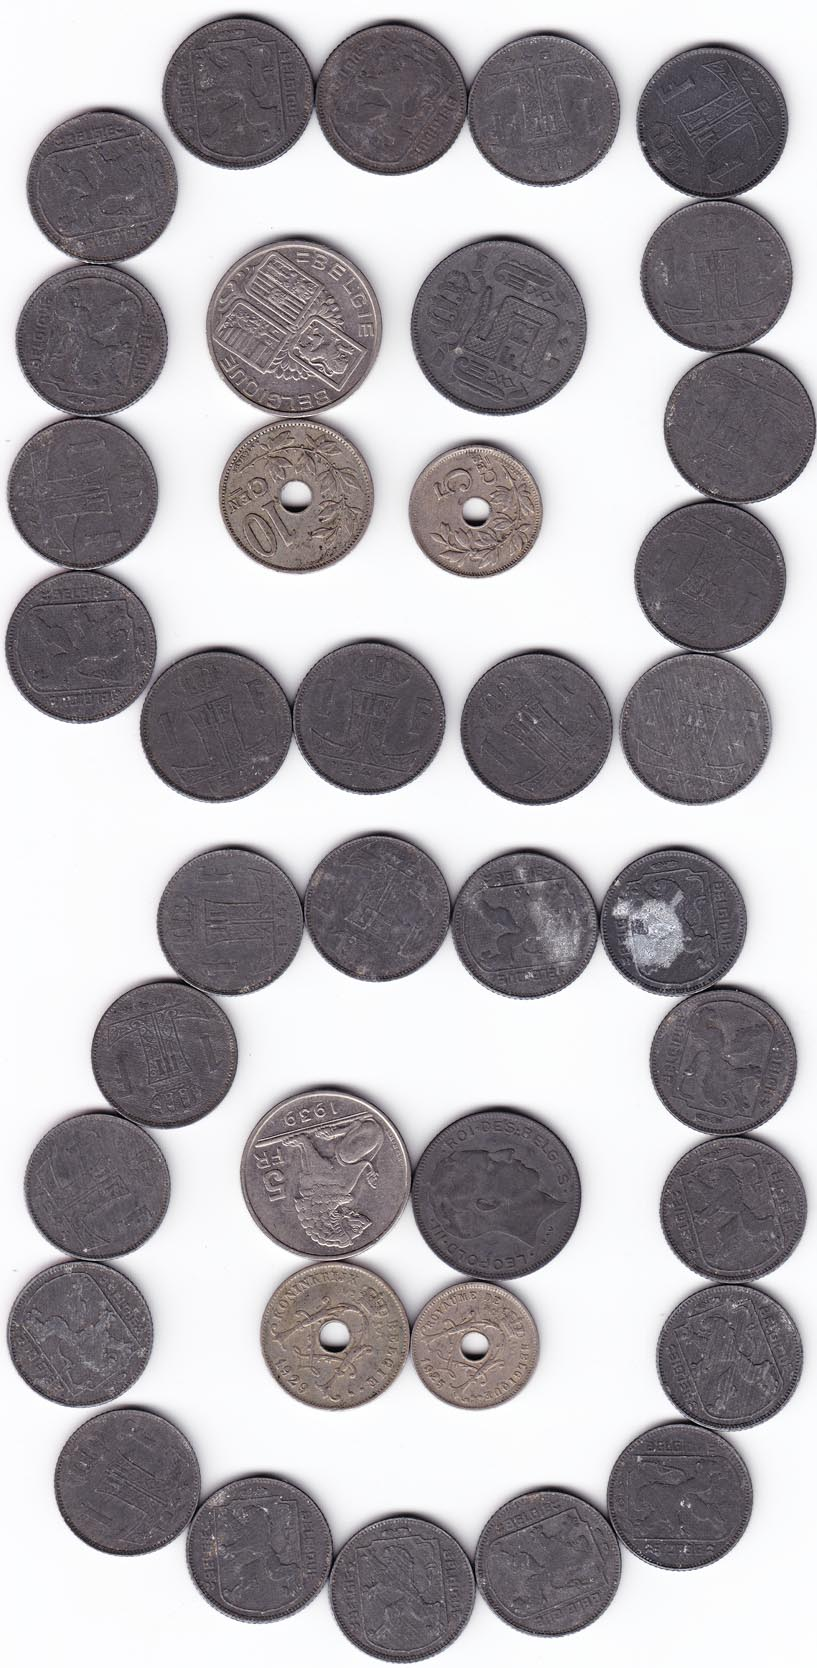 19pc Belgique Coin Grouping